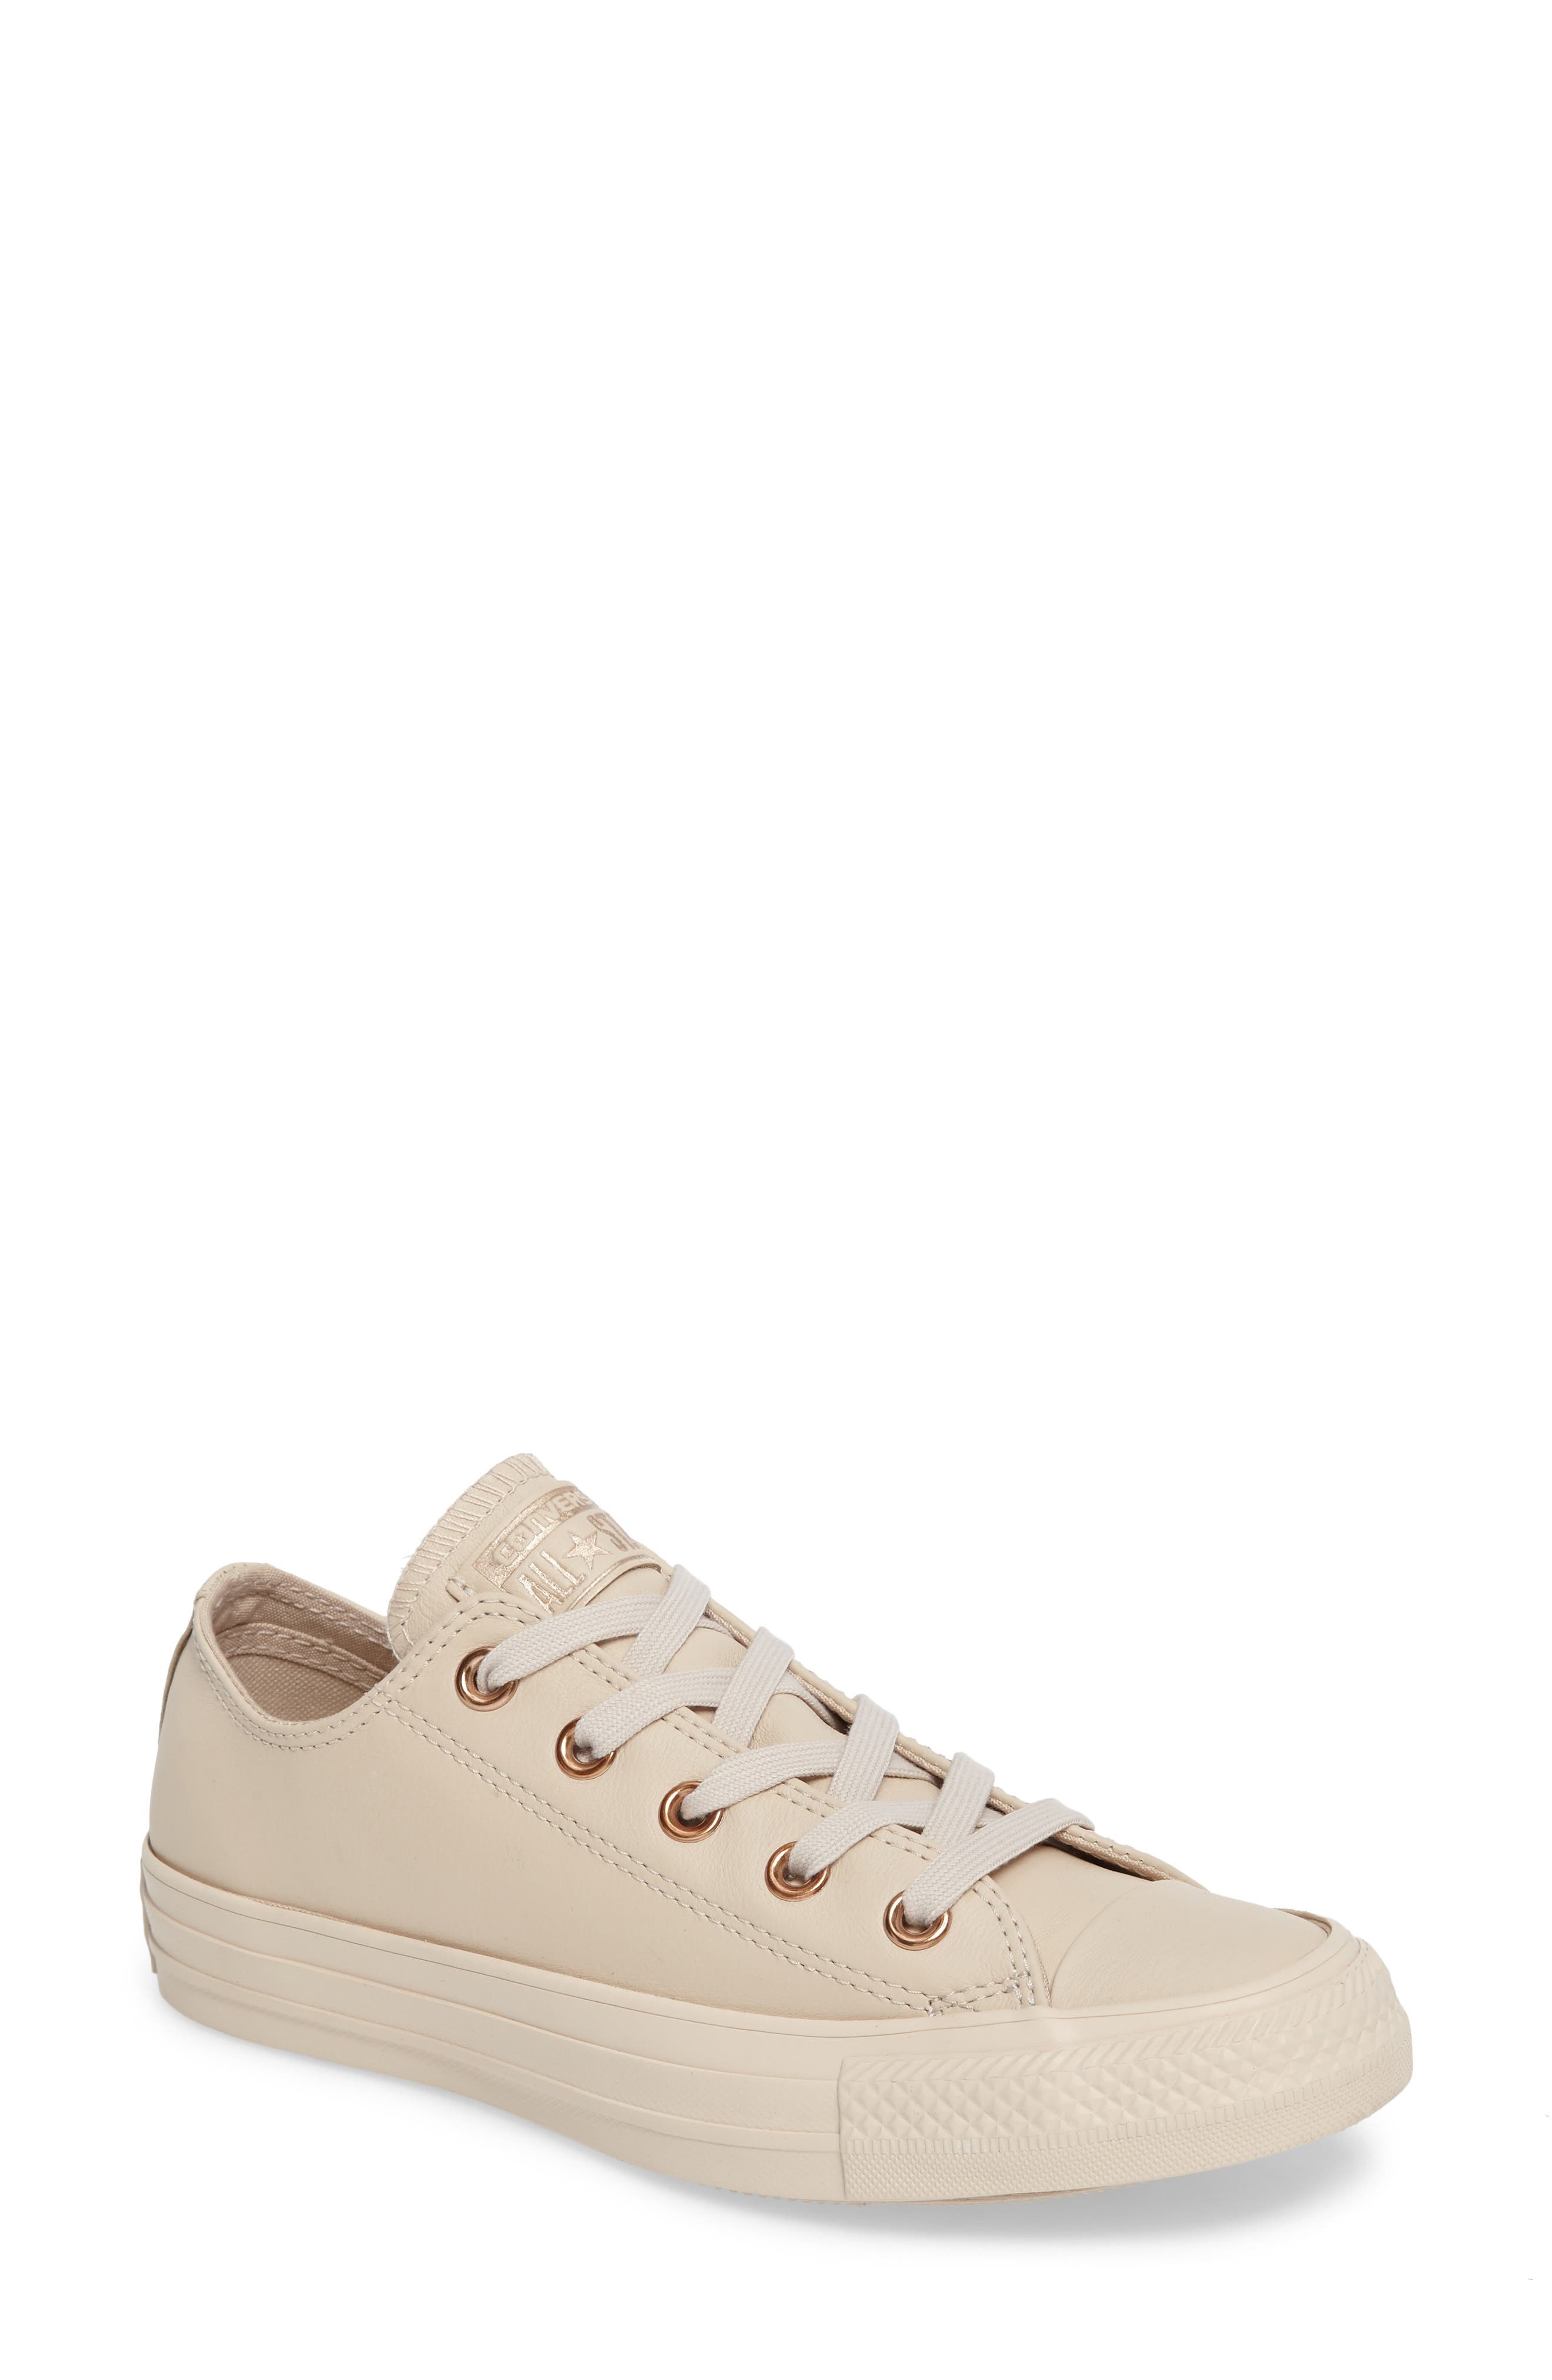 Chuck Taylor<sup>®</sup> All Star<sup>®</sup> Low Sneaker,                         Main,                         color,